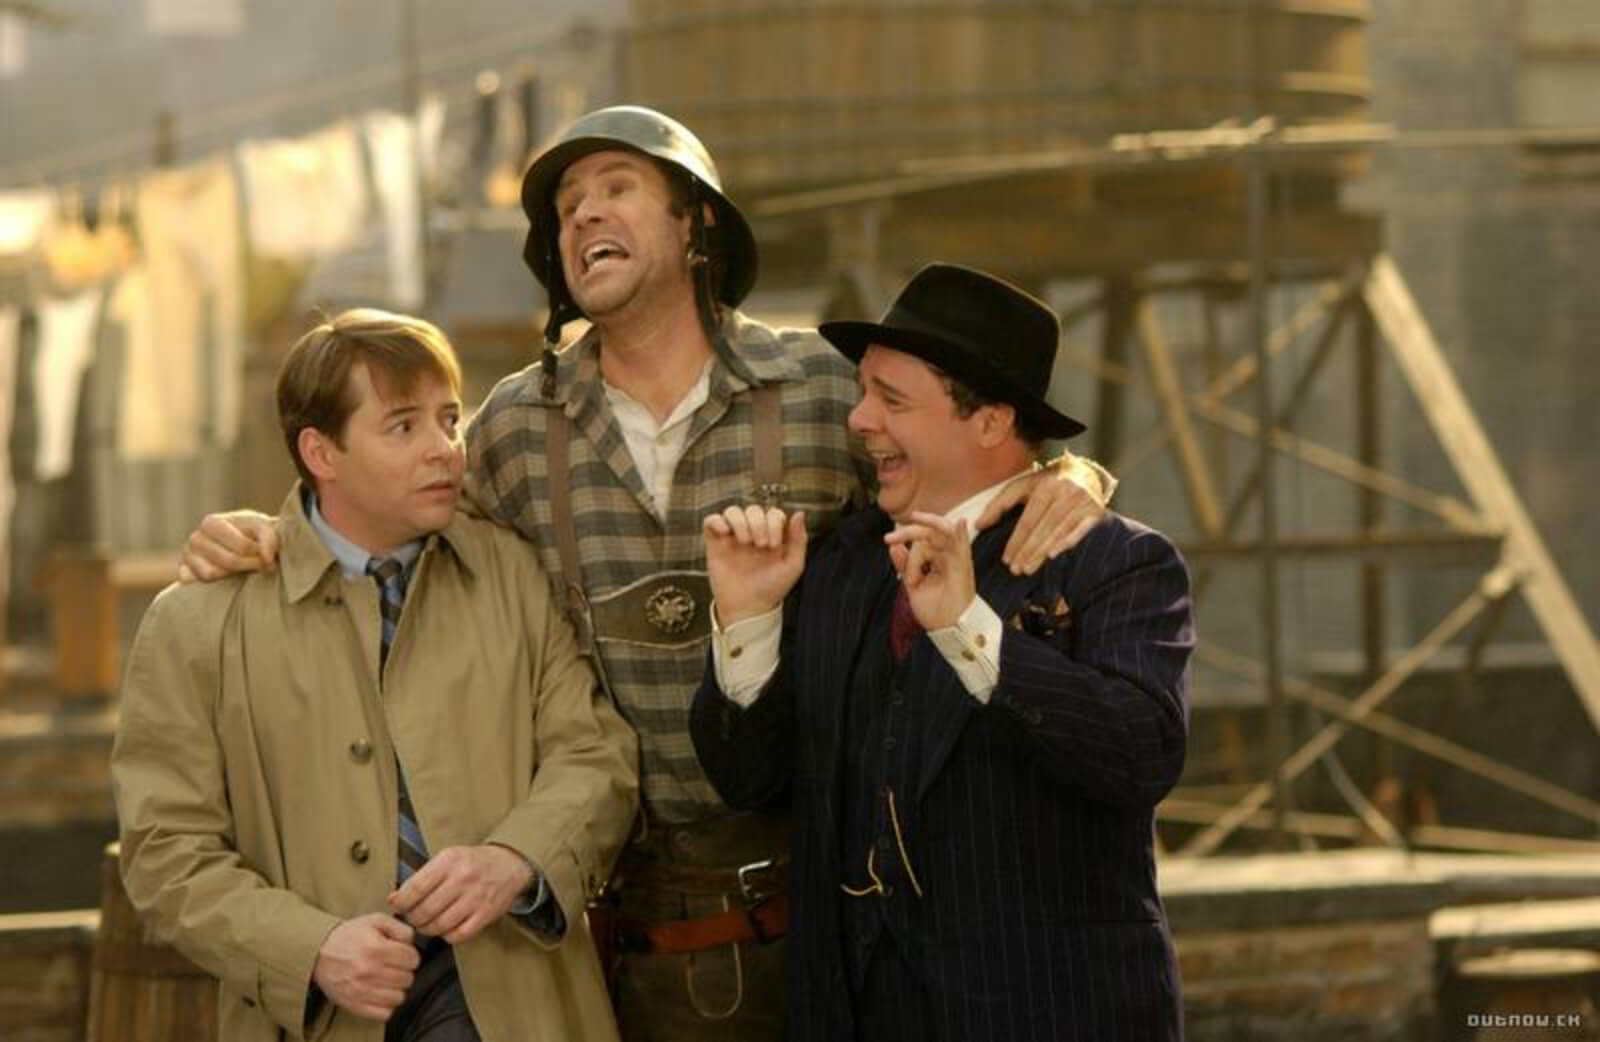 """Leo Bloom (Matthew Broderick), Franz Liebkind (Will Ferrell) and Max Bialystock (Nathan Lane) doing """"Der Guten Tag Hop-Clop"""". They are standing on a roof top. They are swaying together."""